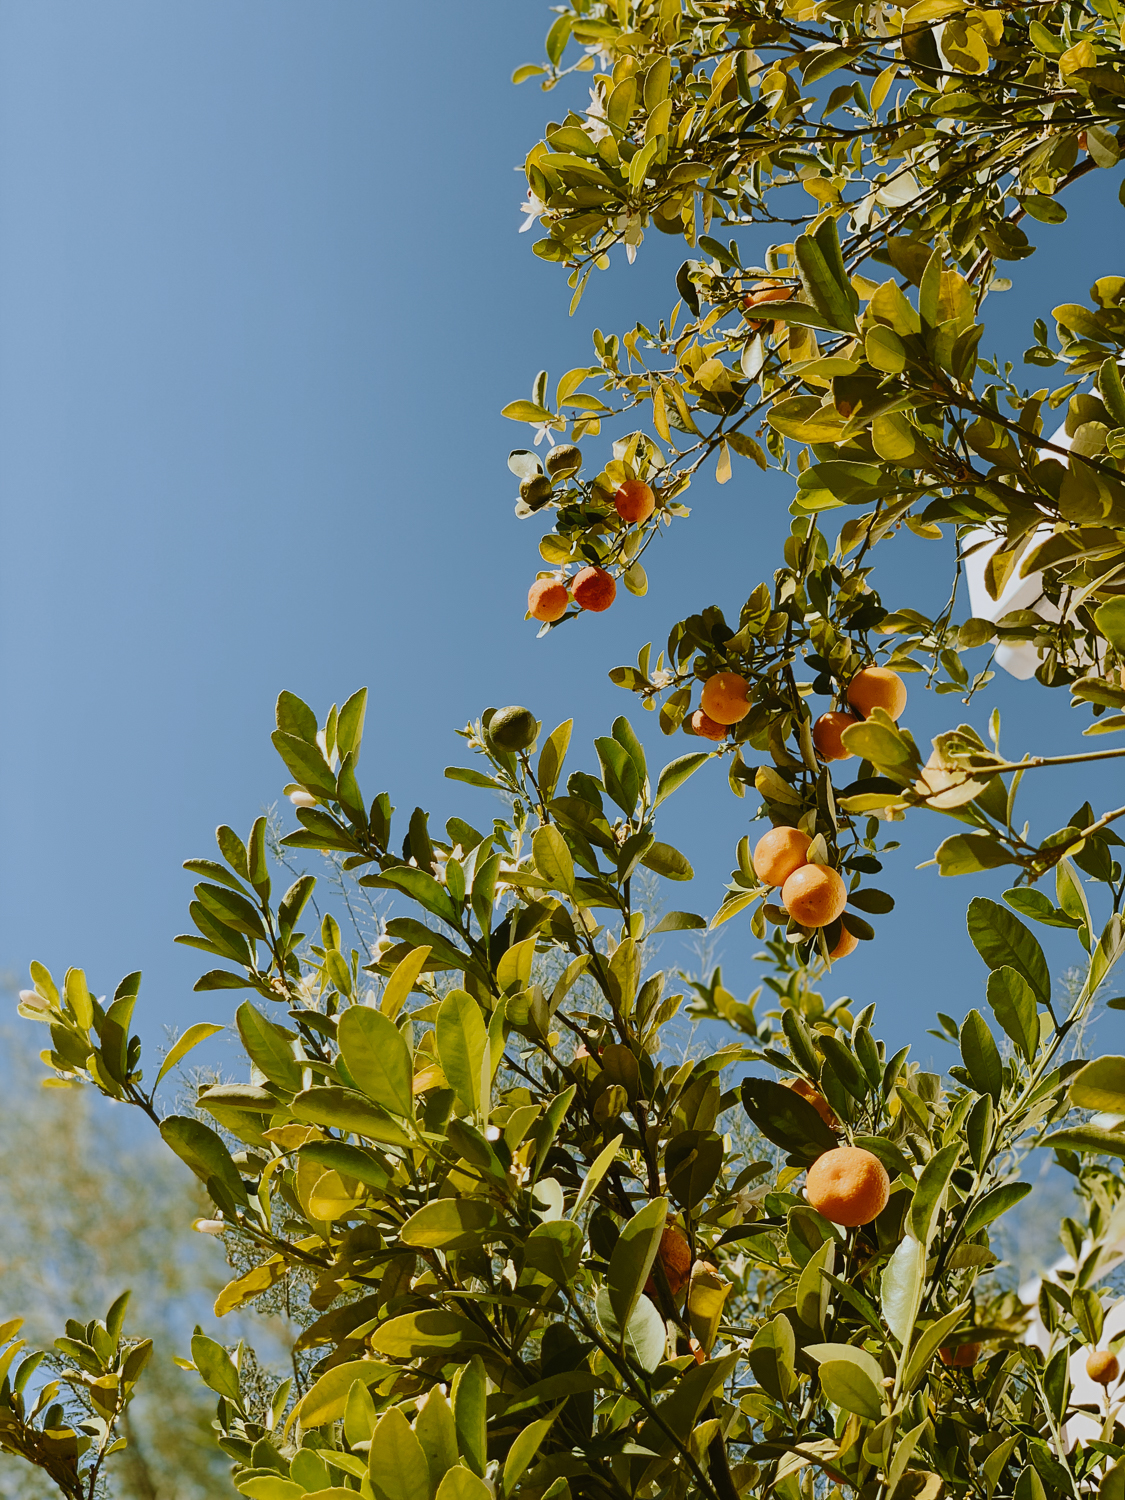 ace_hotel_palm_springs_fruit_trees_lemon.jpg